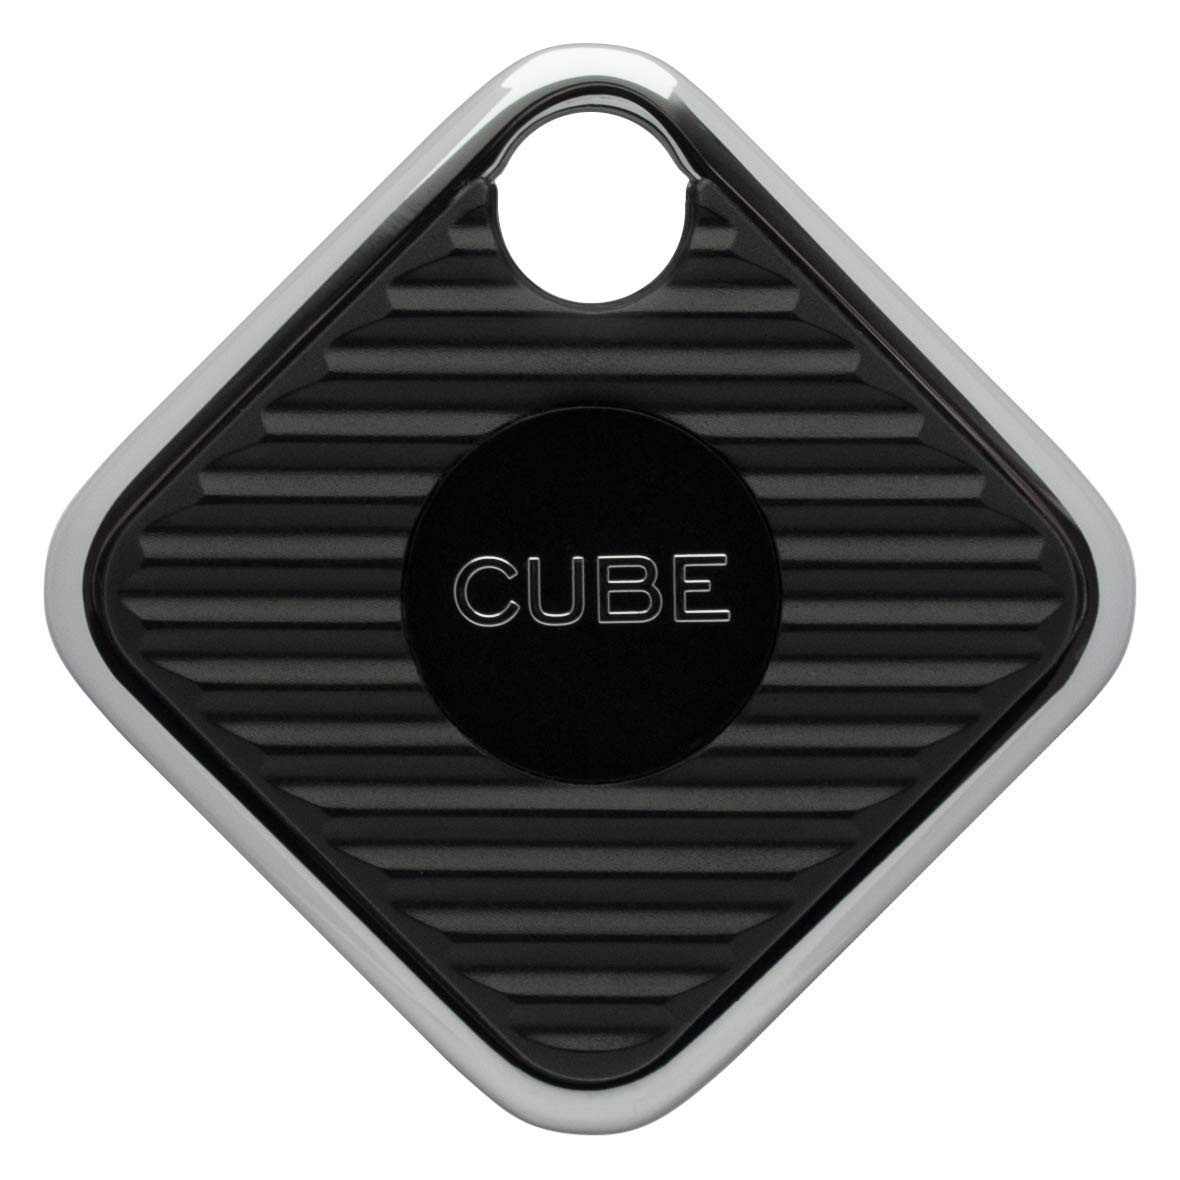 Cube Tracker Replaceable Battery Locator